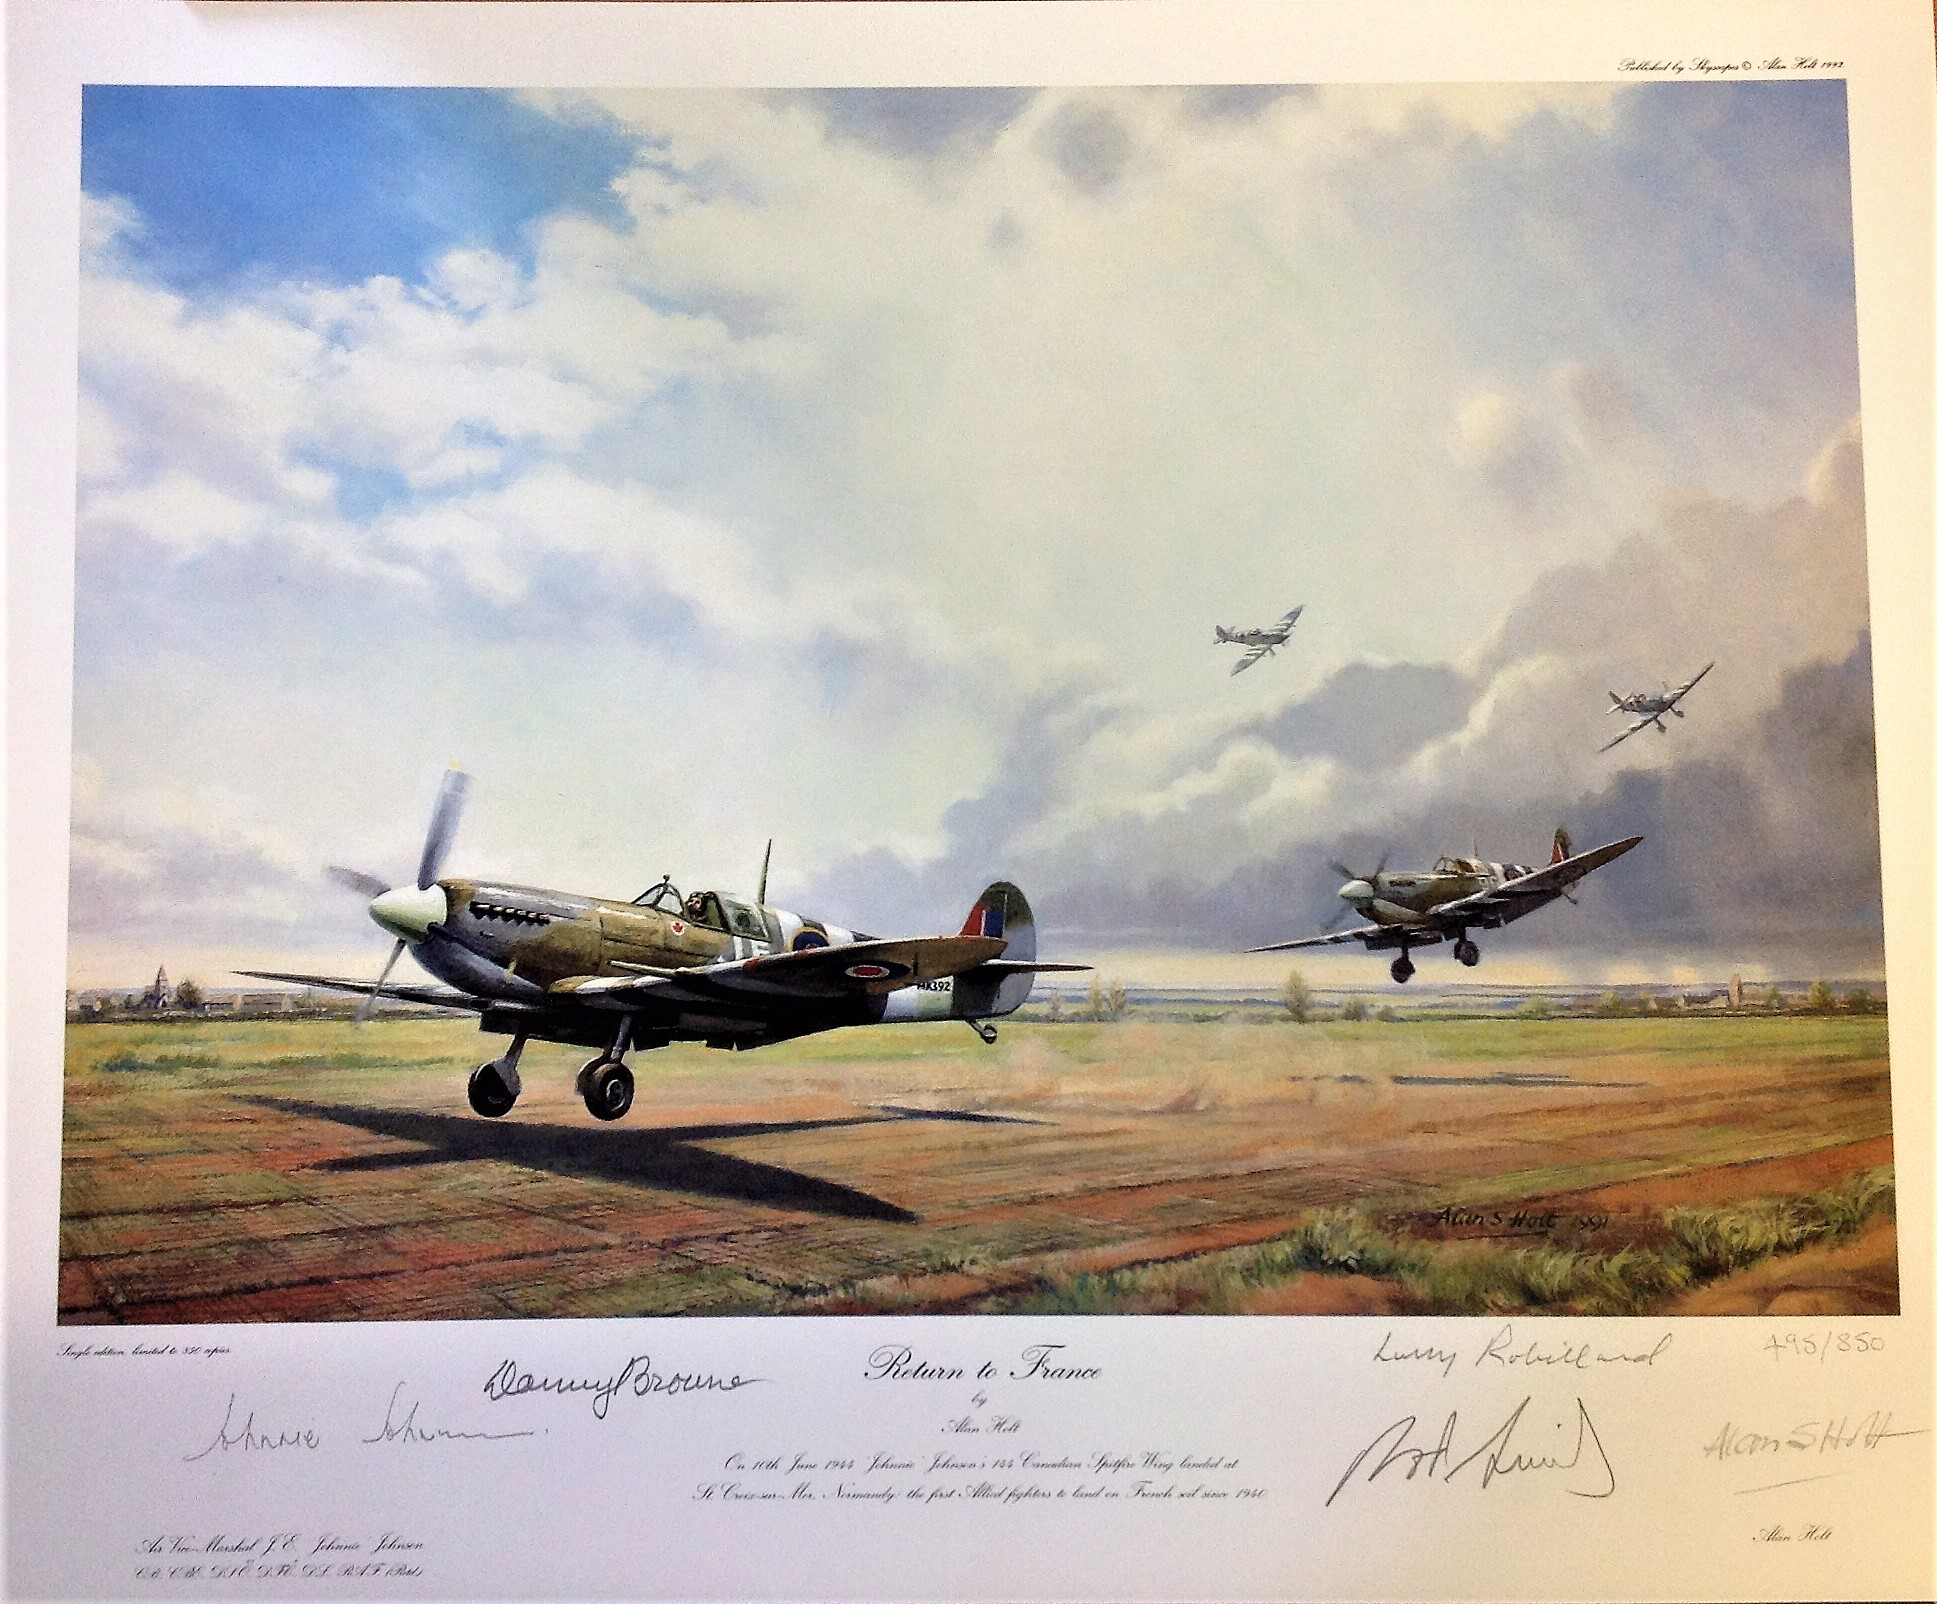 Lot 121 - World War two print approx 22x17 titled Return to France by the artist Alan Holt signed in pencil by